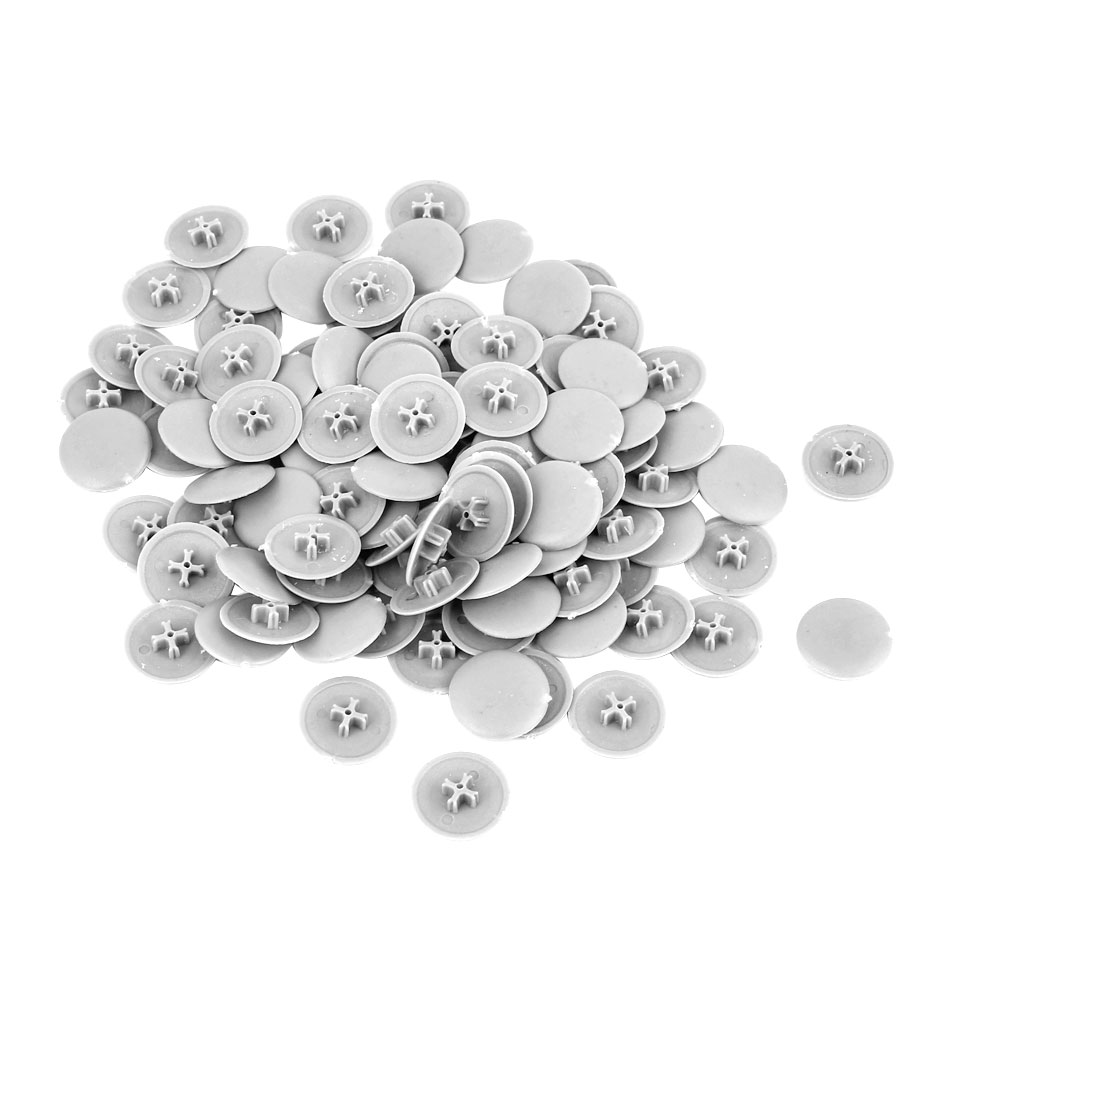 Furniture Desk 17mm Diameter Gray Plastic Mini Cap Cover Insert 100 Pcs